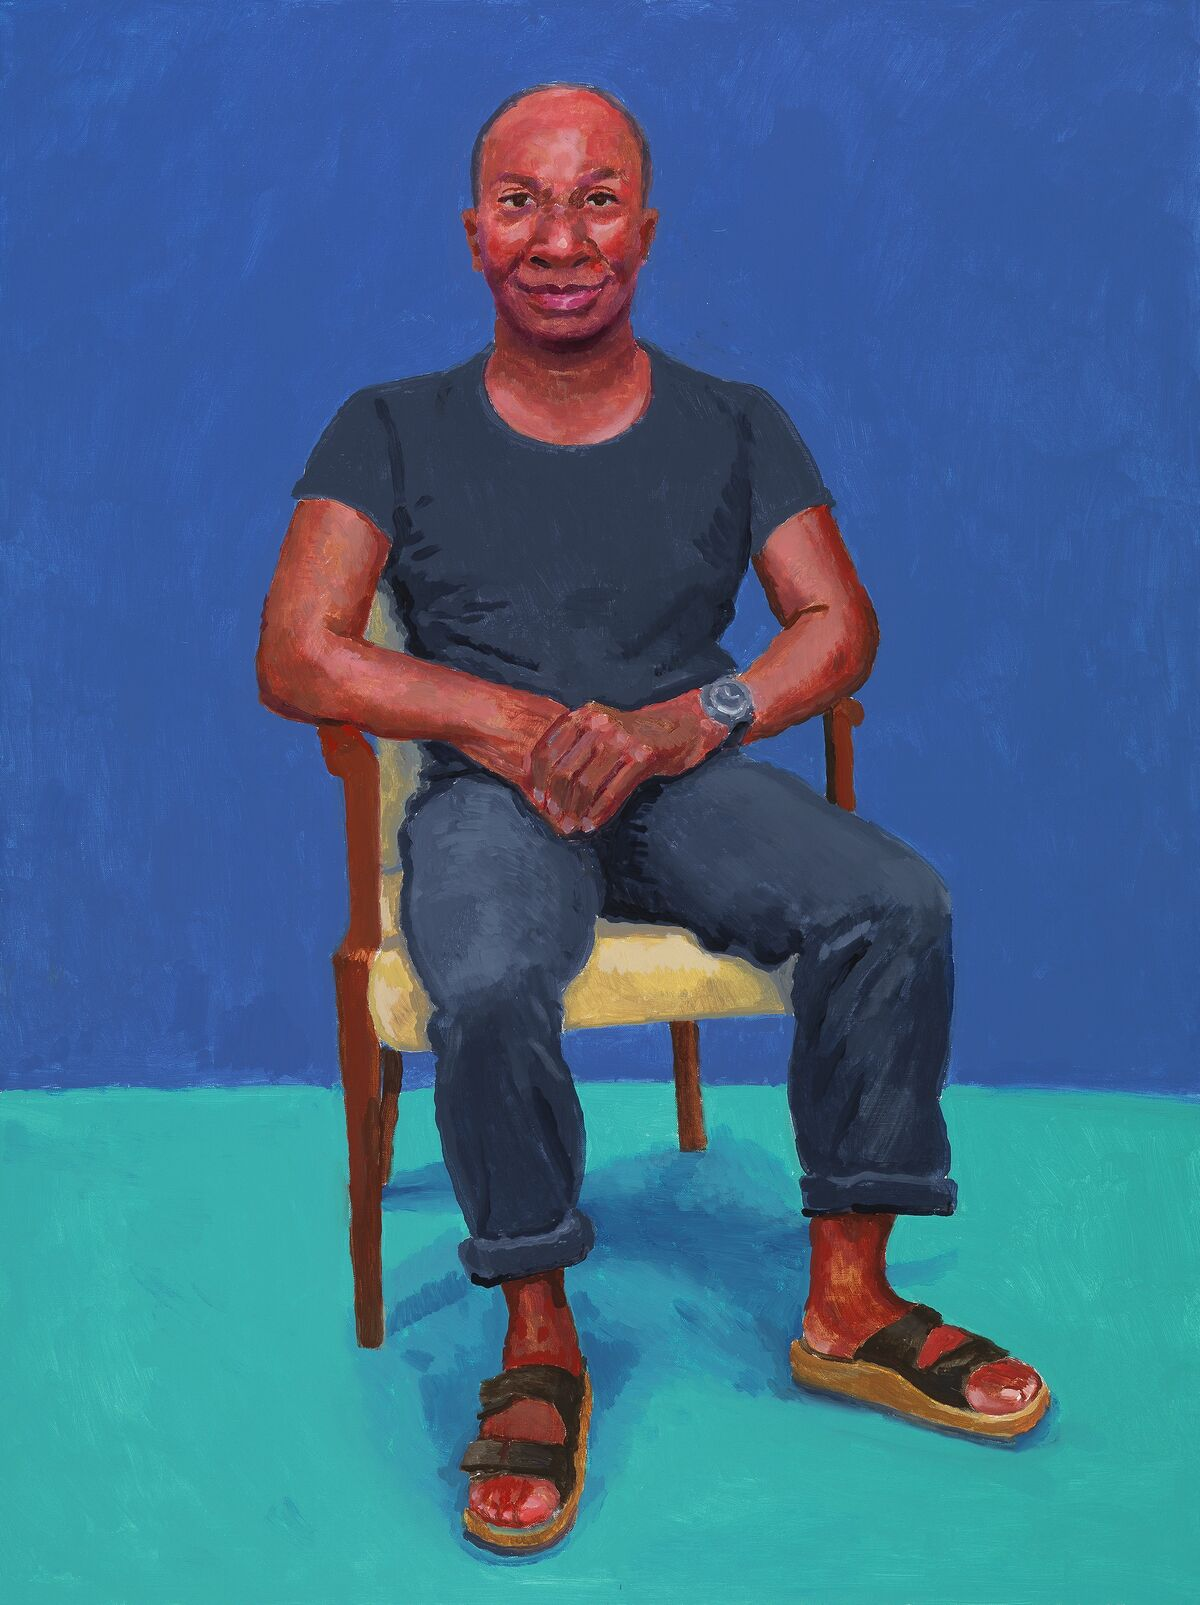 """David Hockney, Earl Simms, 29th February, 1st, 2nd March 2016, 2016, from """"82 Portraits and 1 Still Life."""" © David Hockney. Photo Credit by Richard Schmidt. Courtesy of the Los Angeles Museum of Art."""